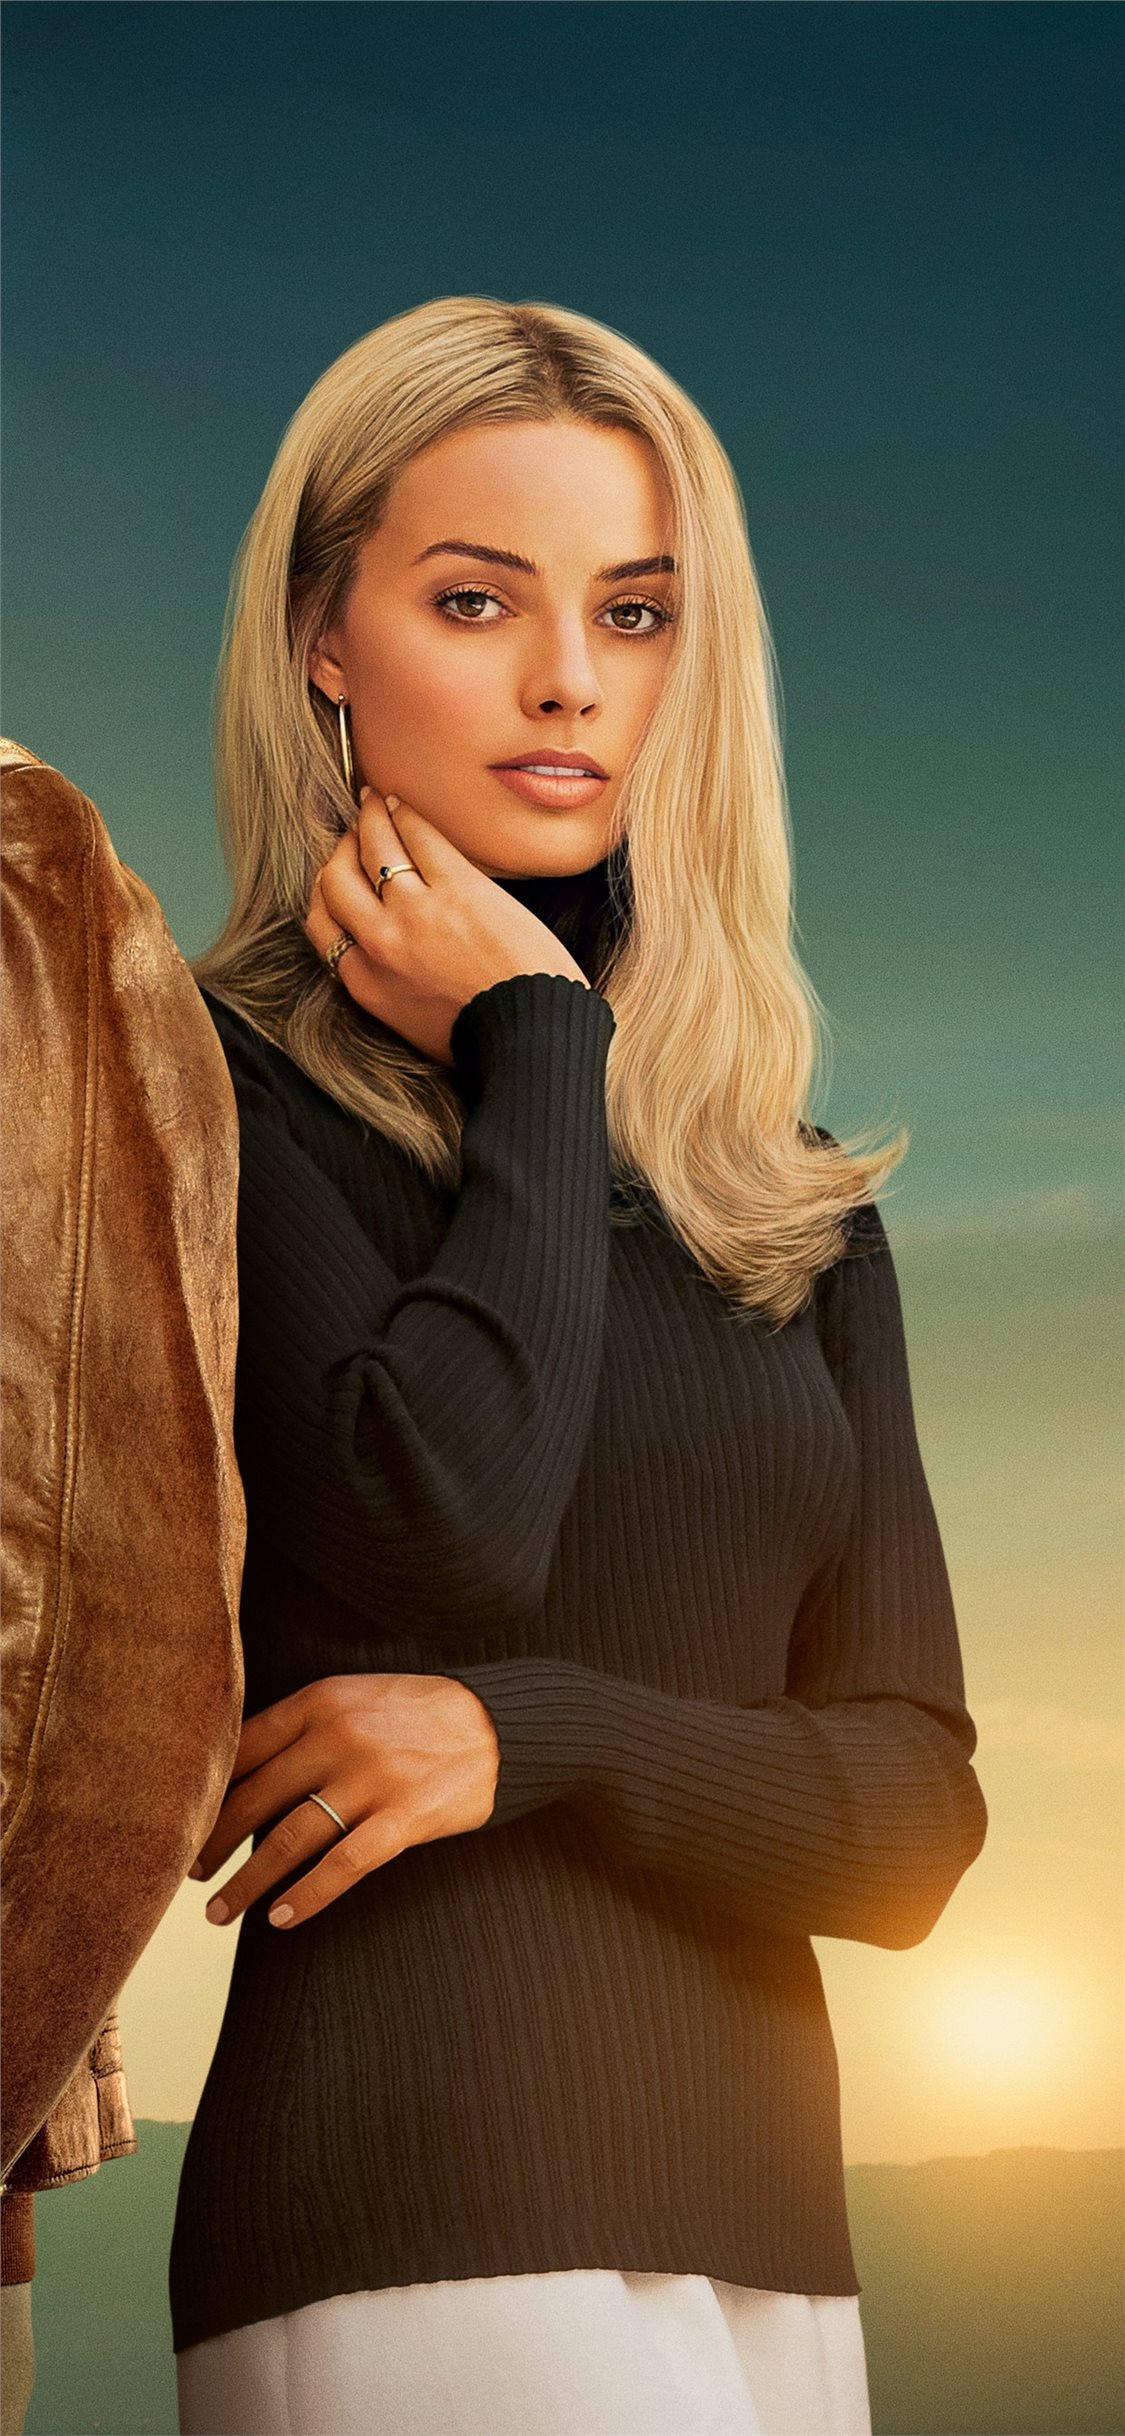 Once Upon A Time In Hollywood 2019 8k Iphone X Wallpapers Free